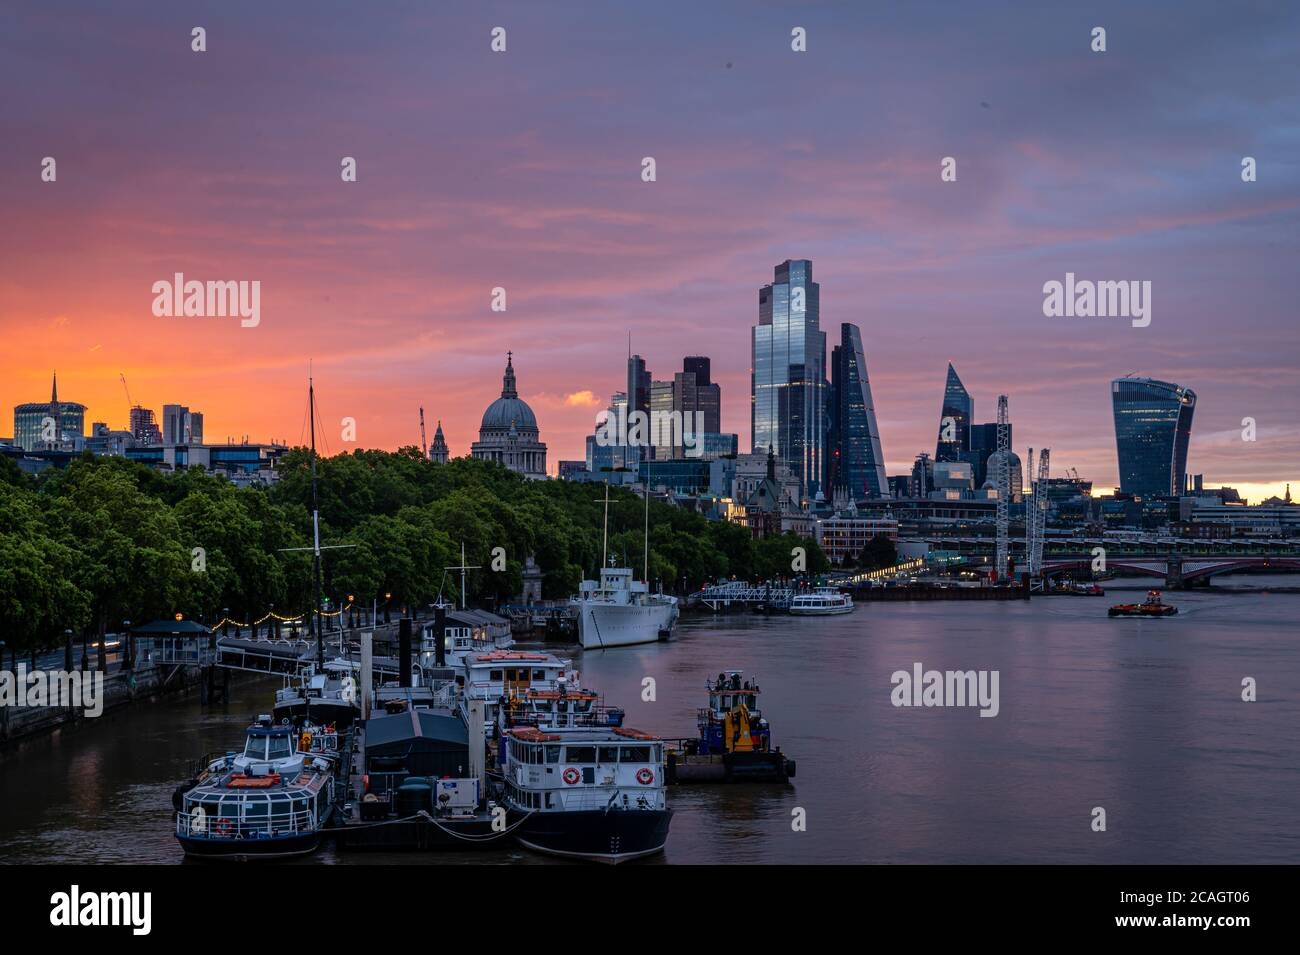 Sunrise in central London, with the sun just appearing, London Stock Photo